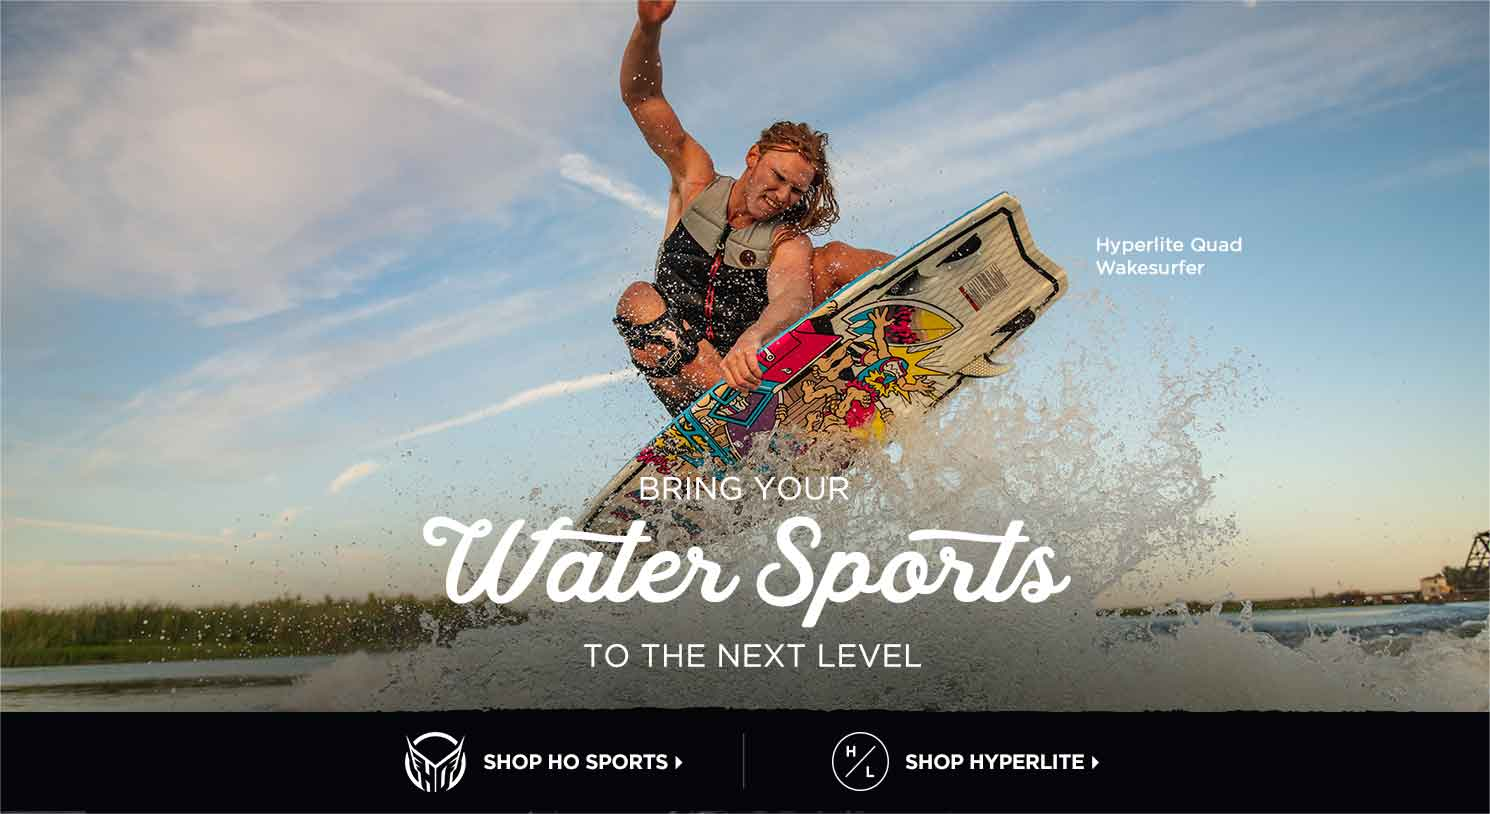 Bring Your Water Sports to the Next Level